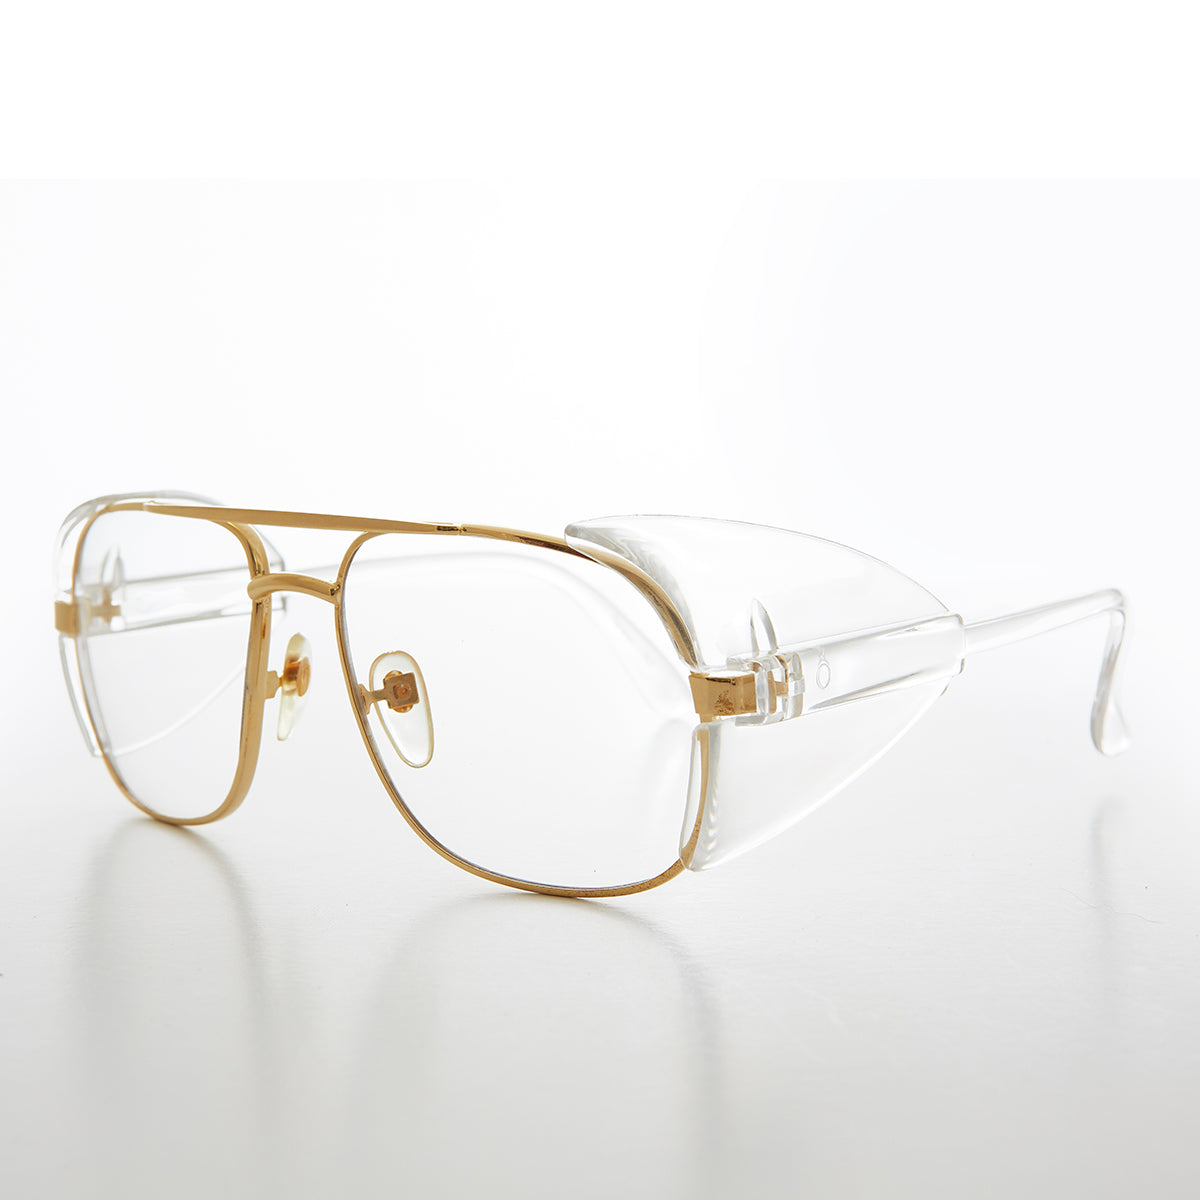 Square Safety Eyeglasses with Side Shields